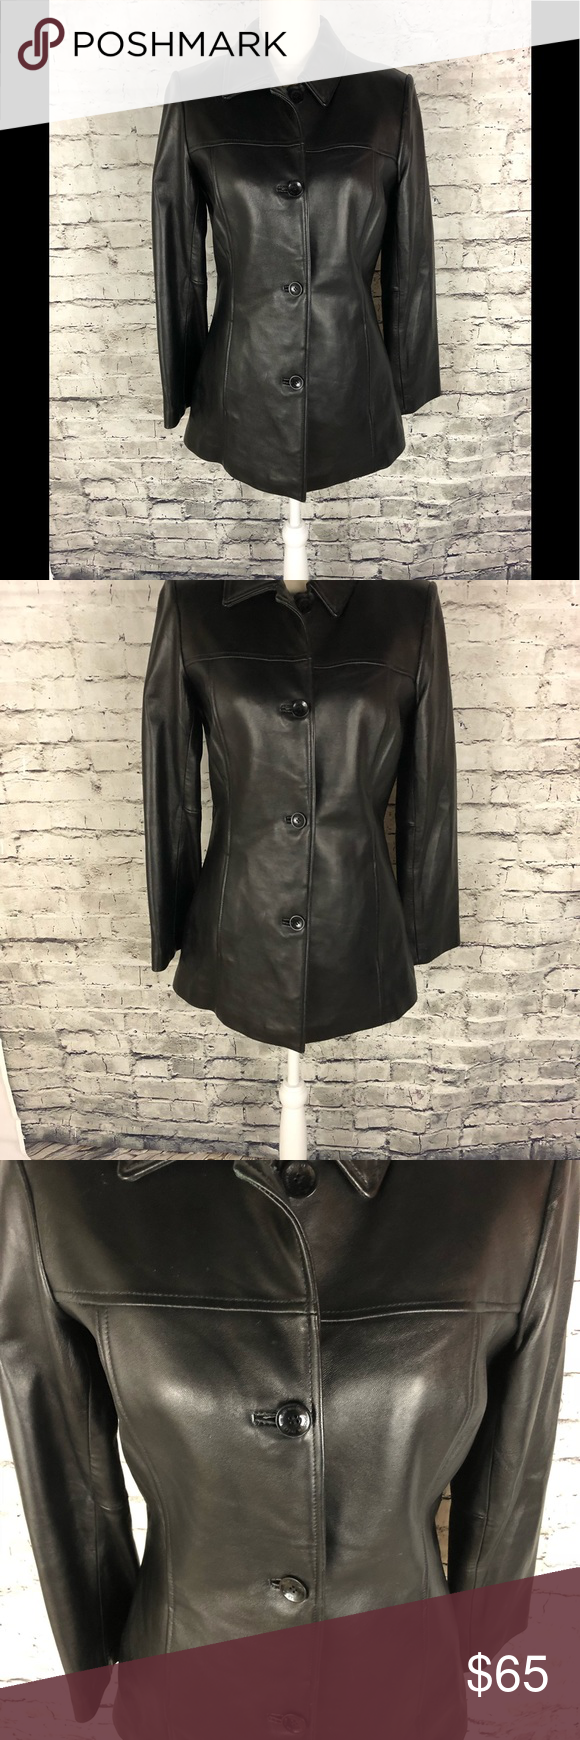 Women's Small Wilson Leather Pelle Studio Jacket Beautiful